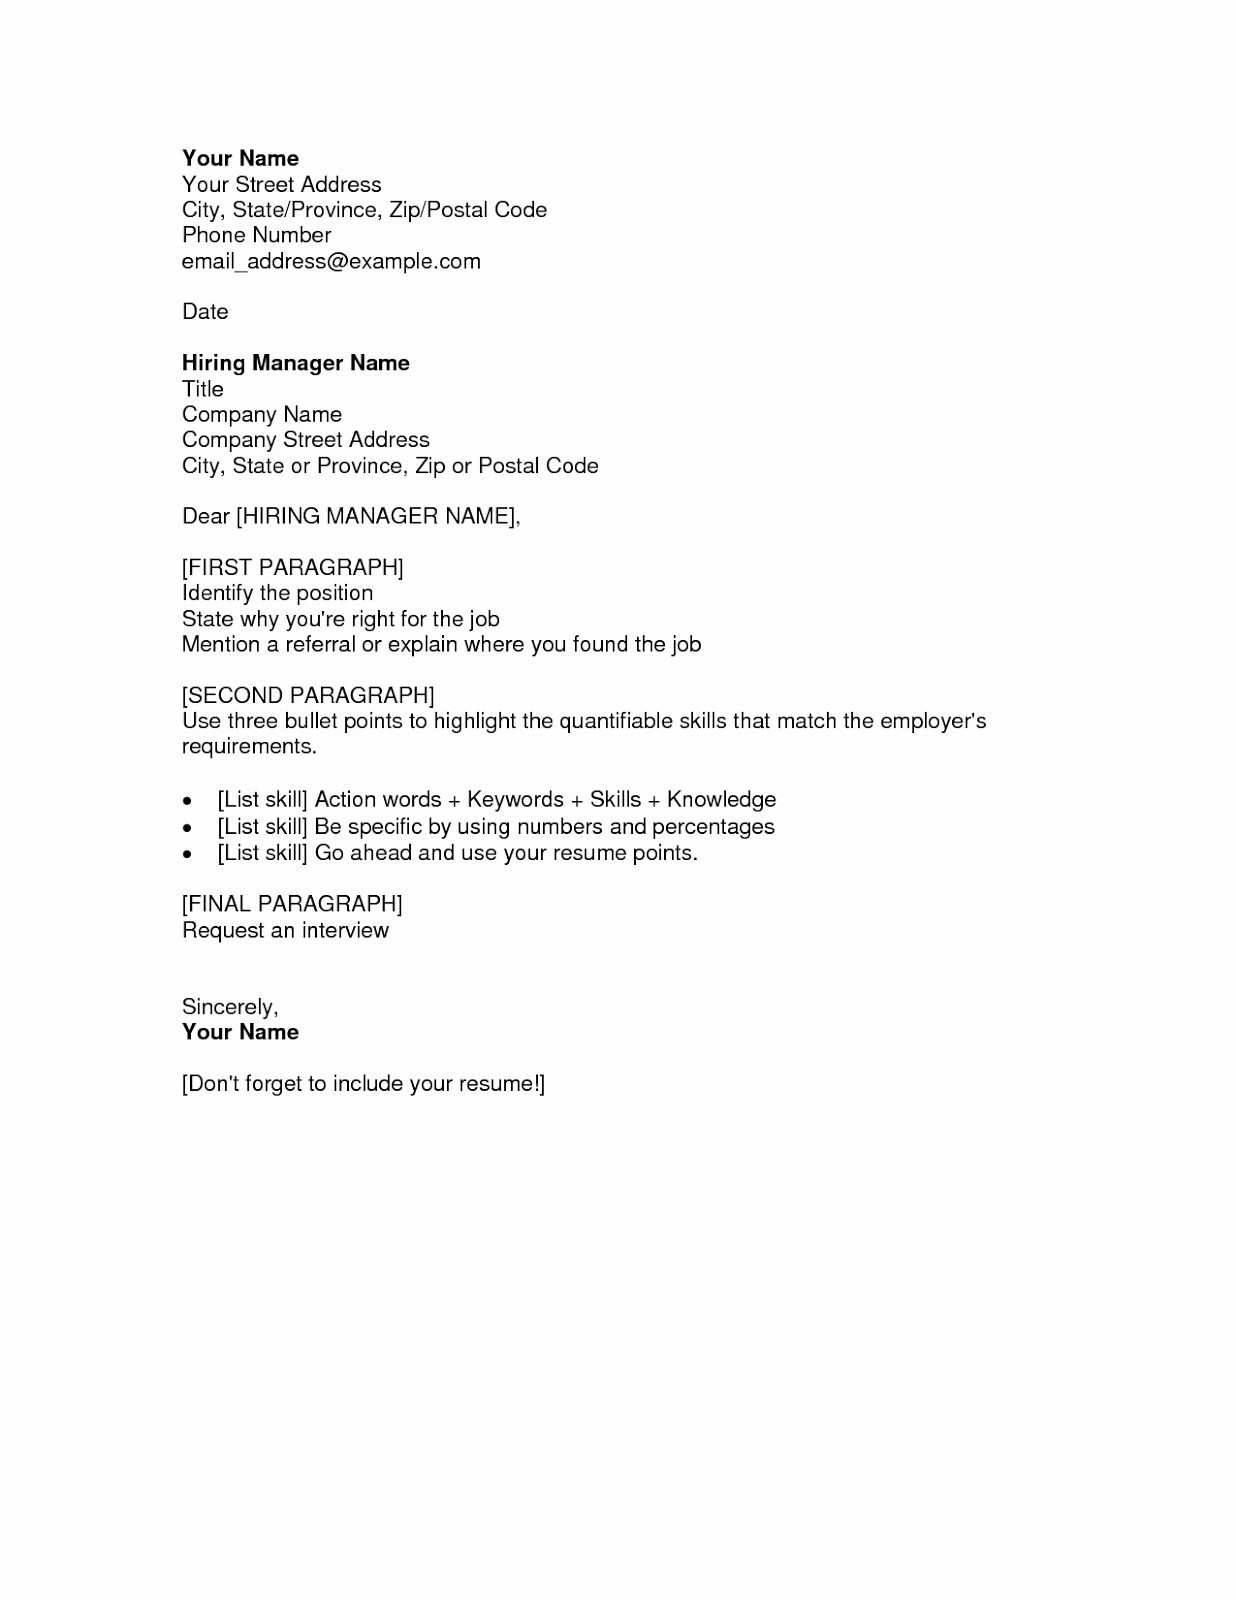 Free Cover Letter for Resume Luxury Free Cover Letter Samples for Resumes